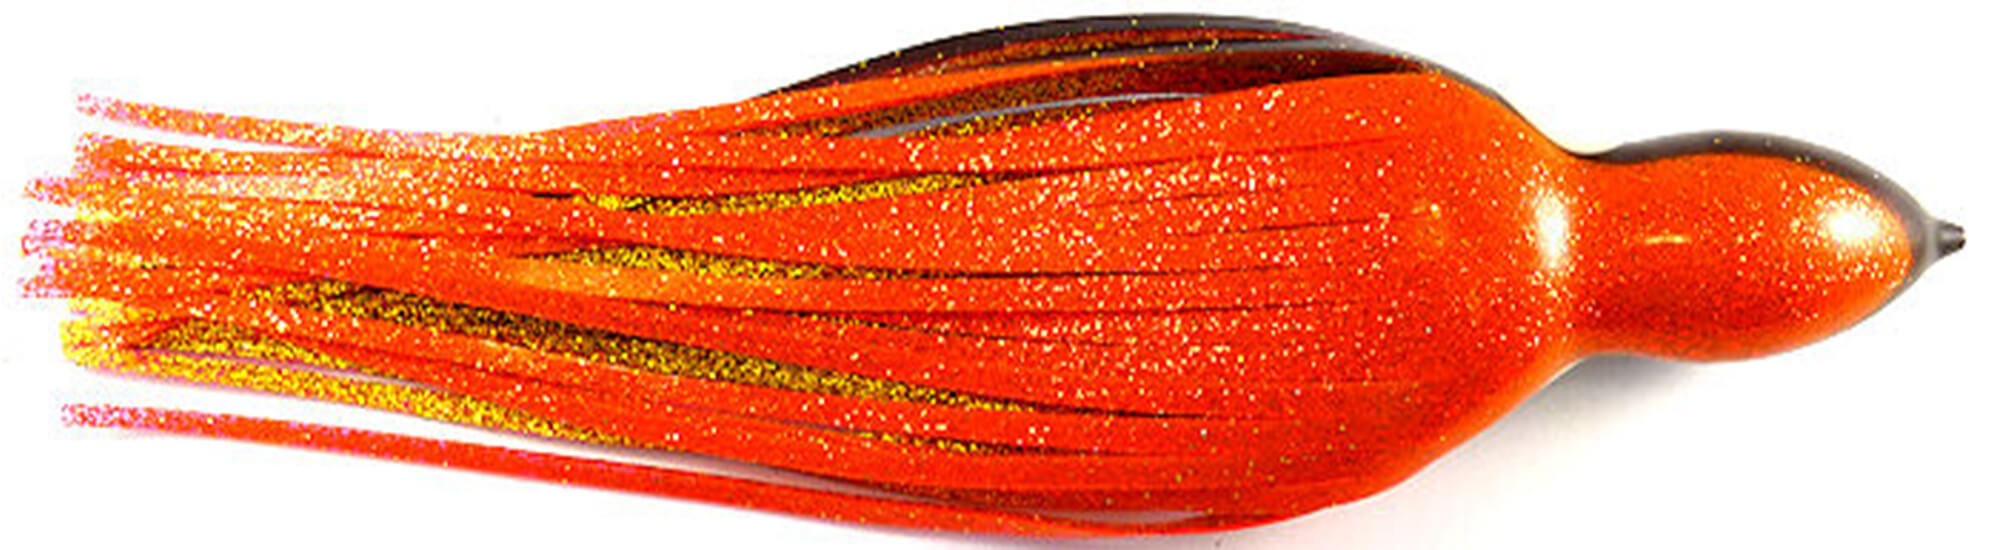 Yo-Zuri Skirts - Best skirts for trolling lures